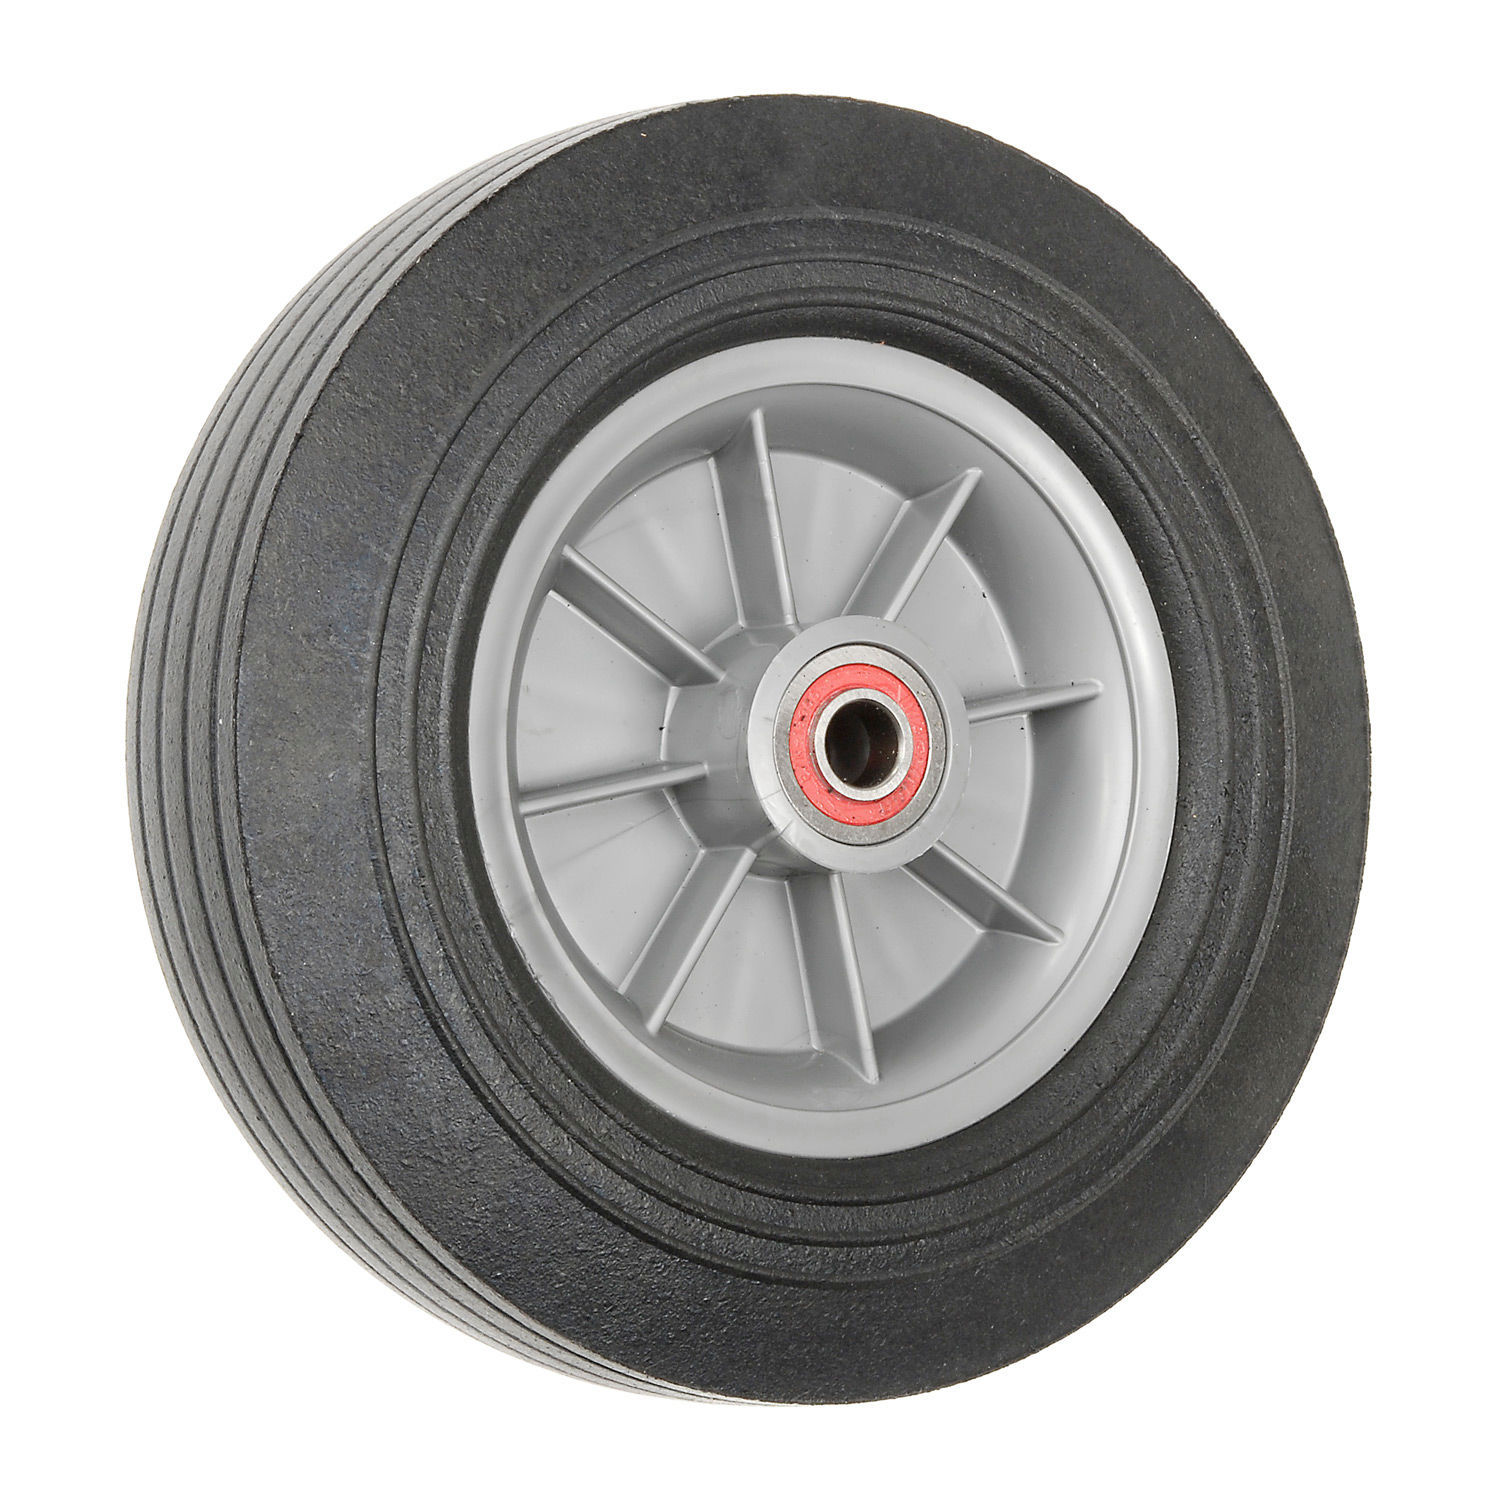 MAGLINER Hand Truck Replacement Wheels - Solid Rubber, Lot o